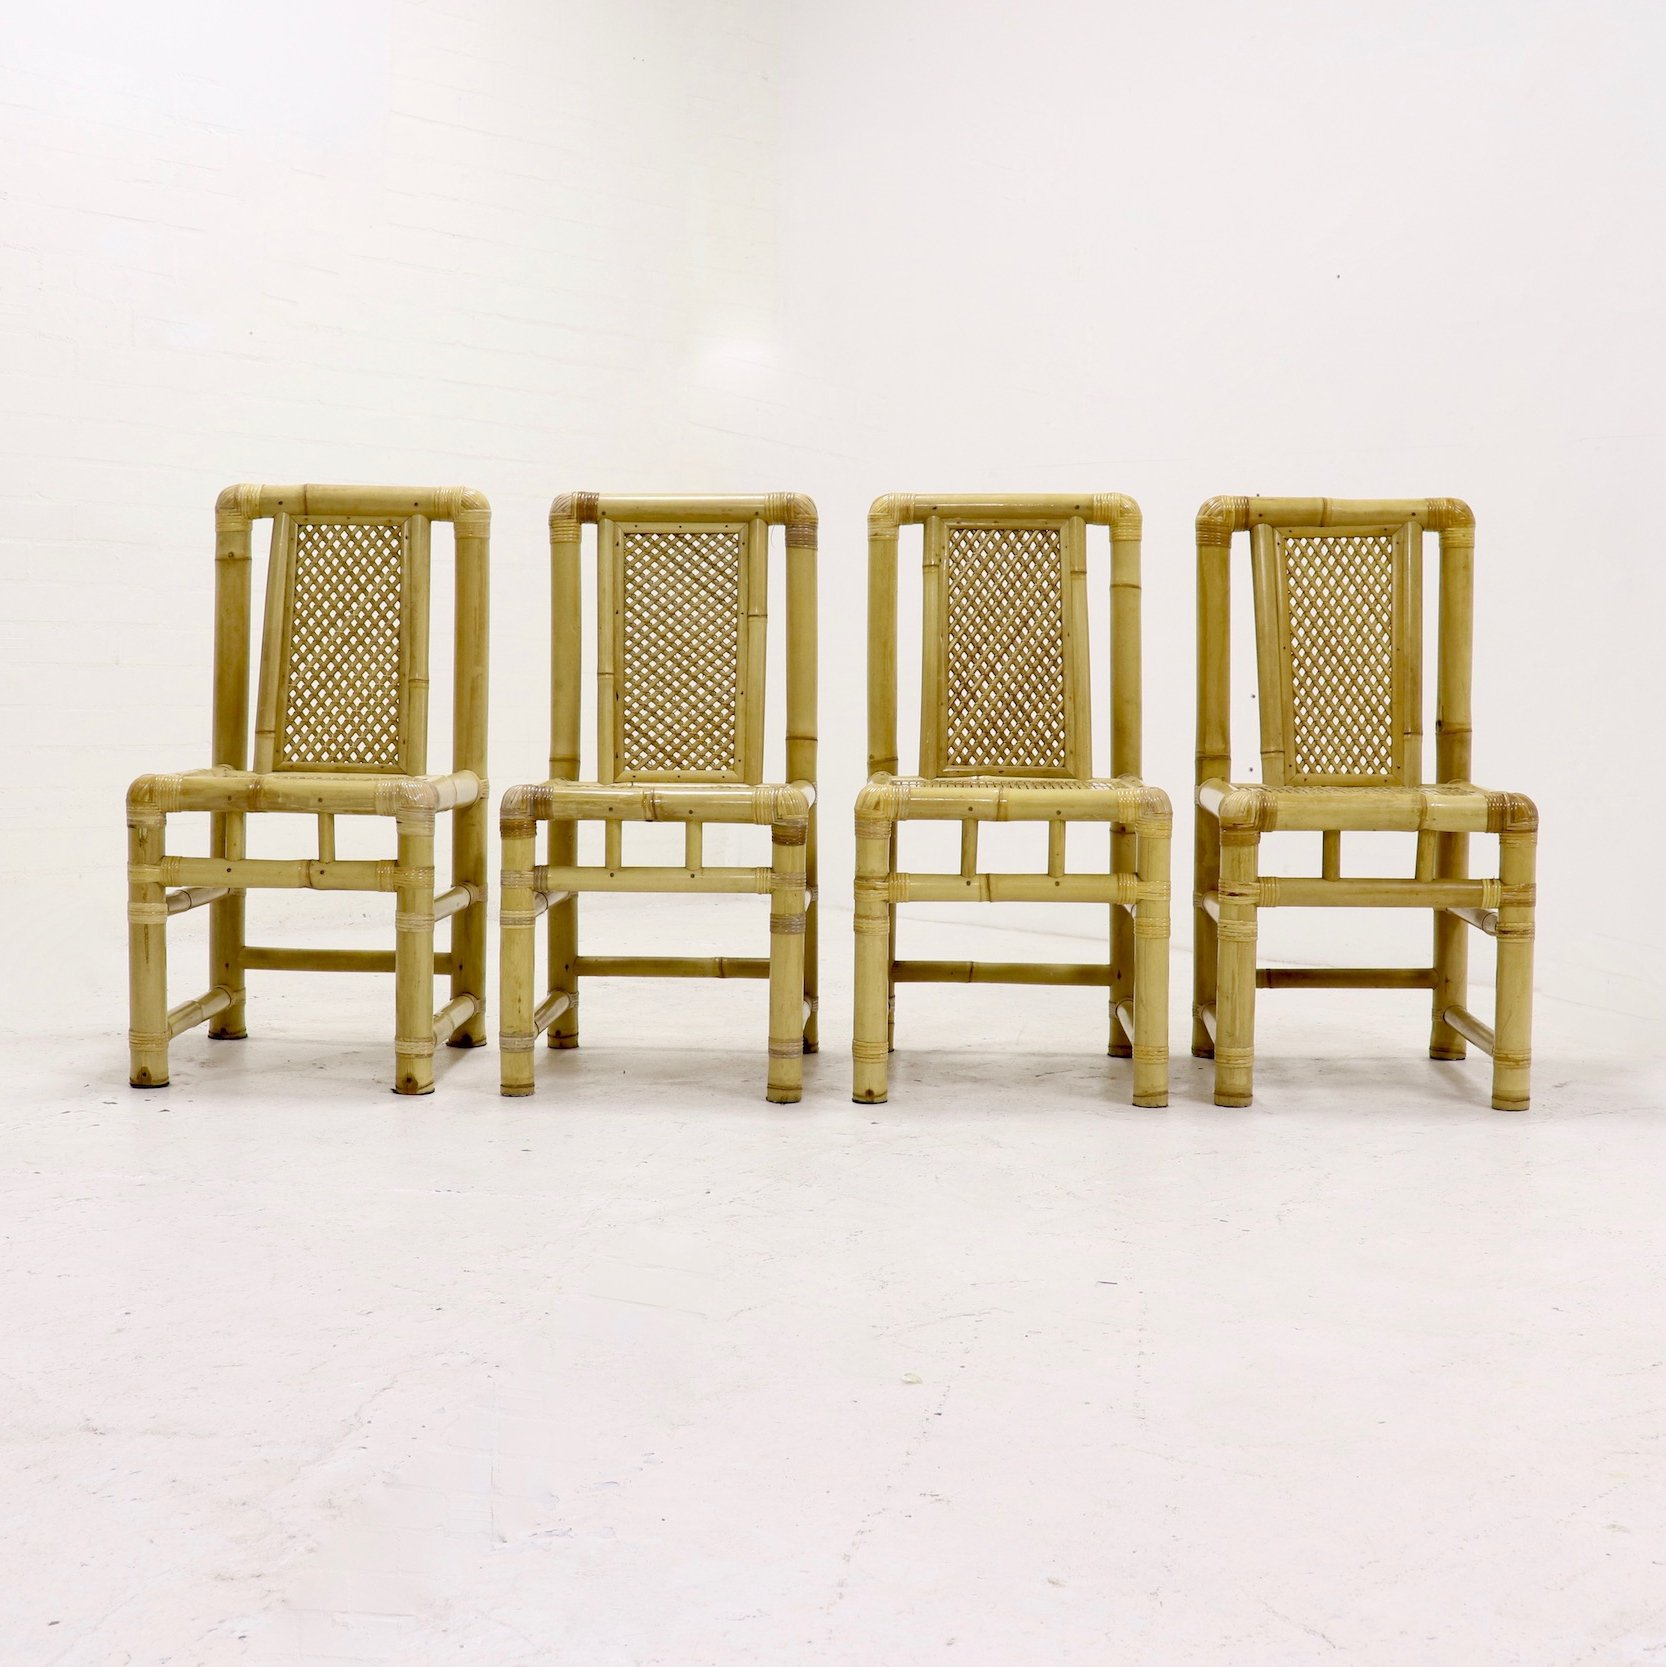 Image of: Set Of 4 Mid Century Modern Bamboo Dining Chairs In Tropicalist Style 1970s 122587